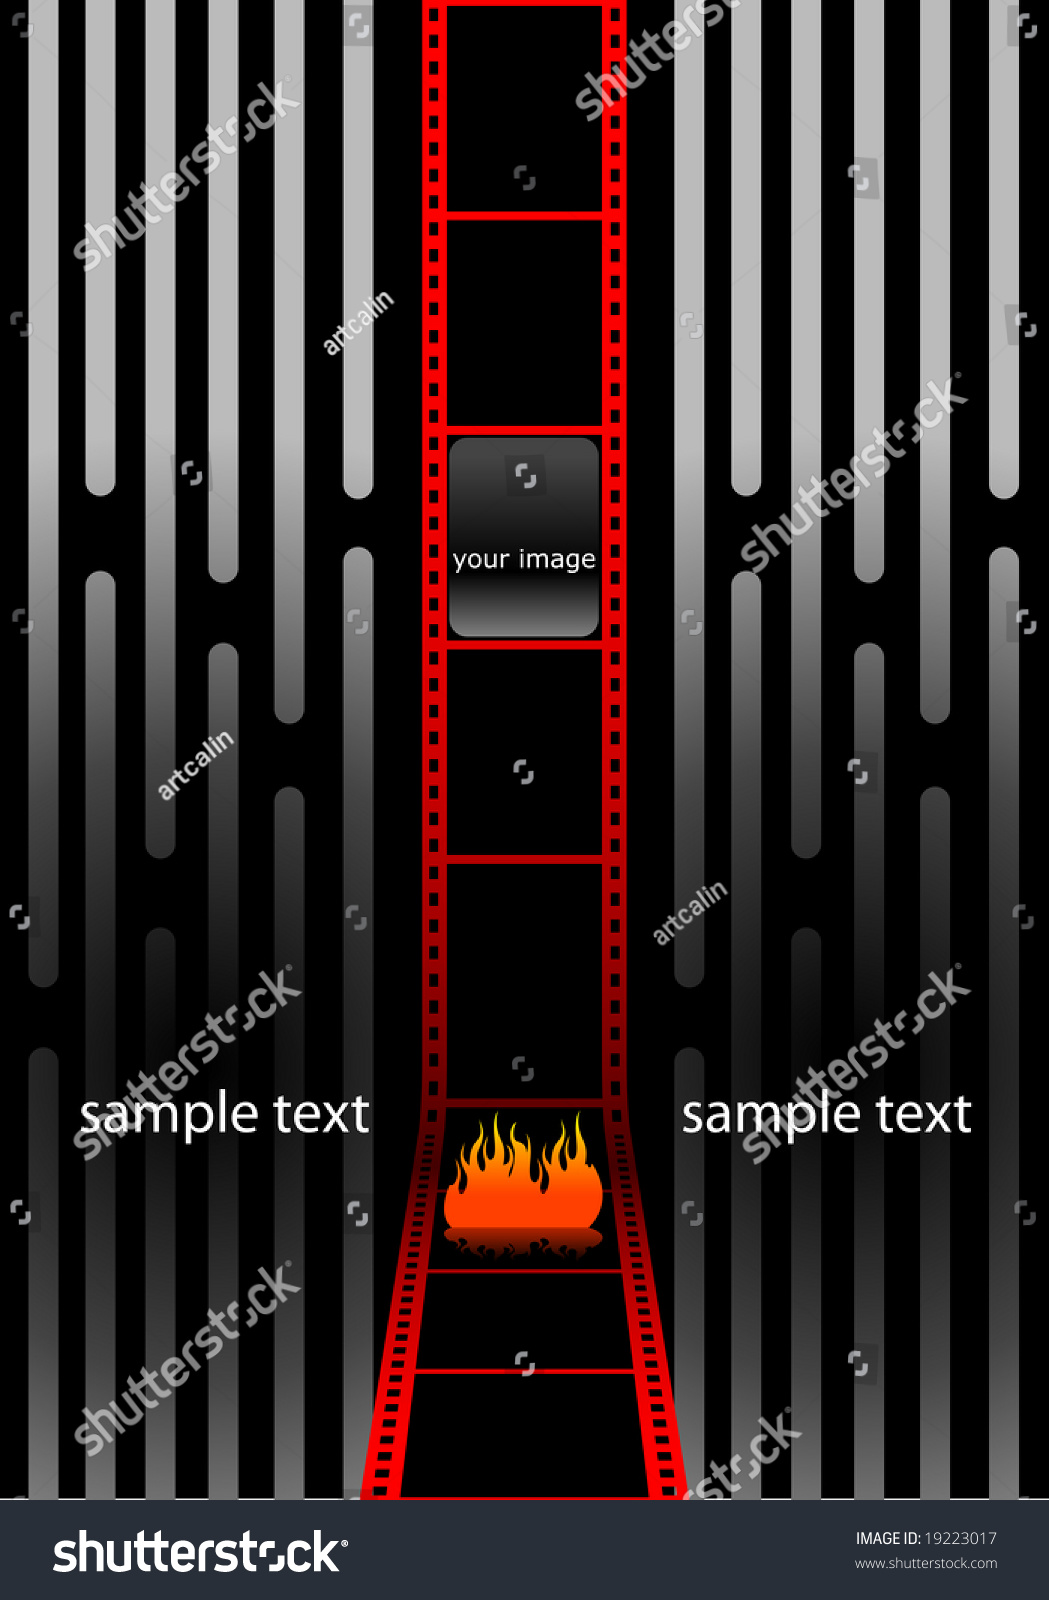 modern cinema wallpaper red film strip stock photo (photo, vector